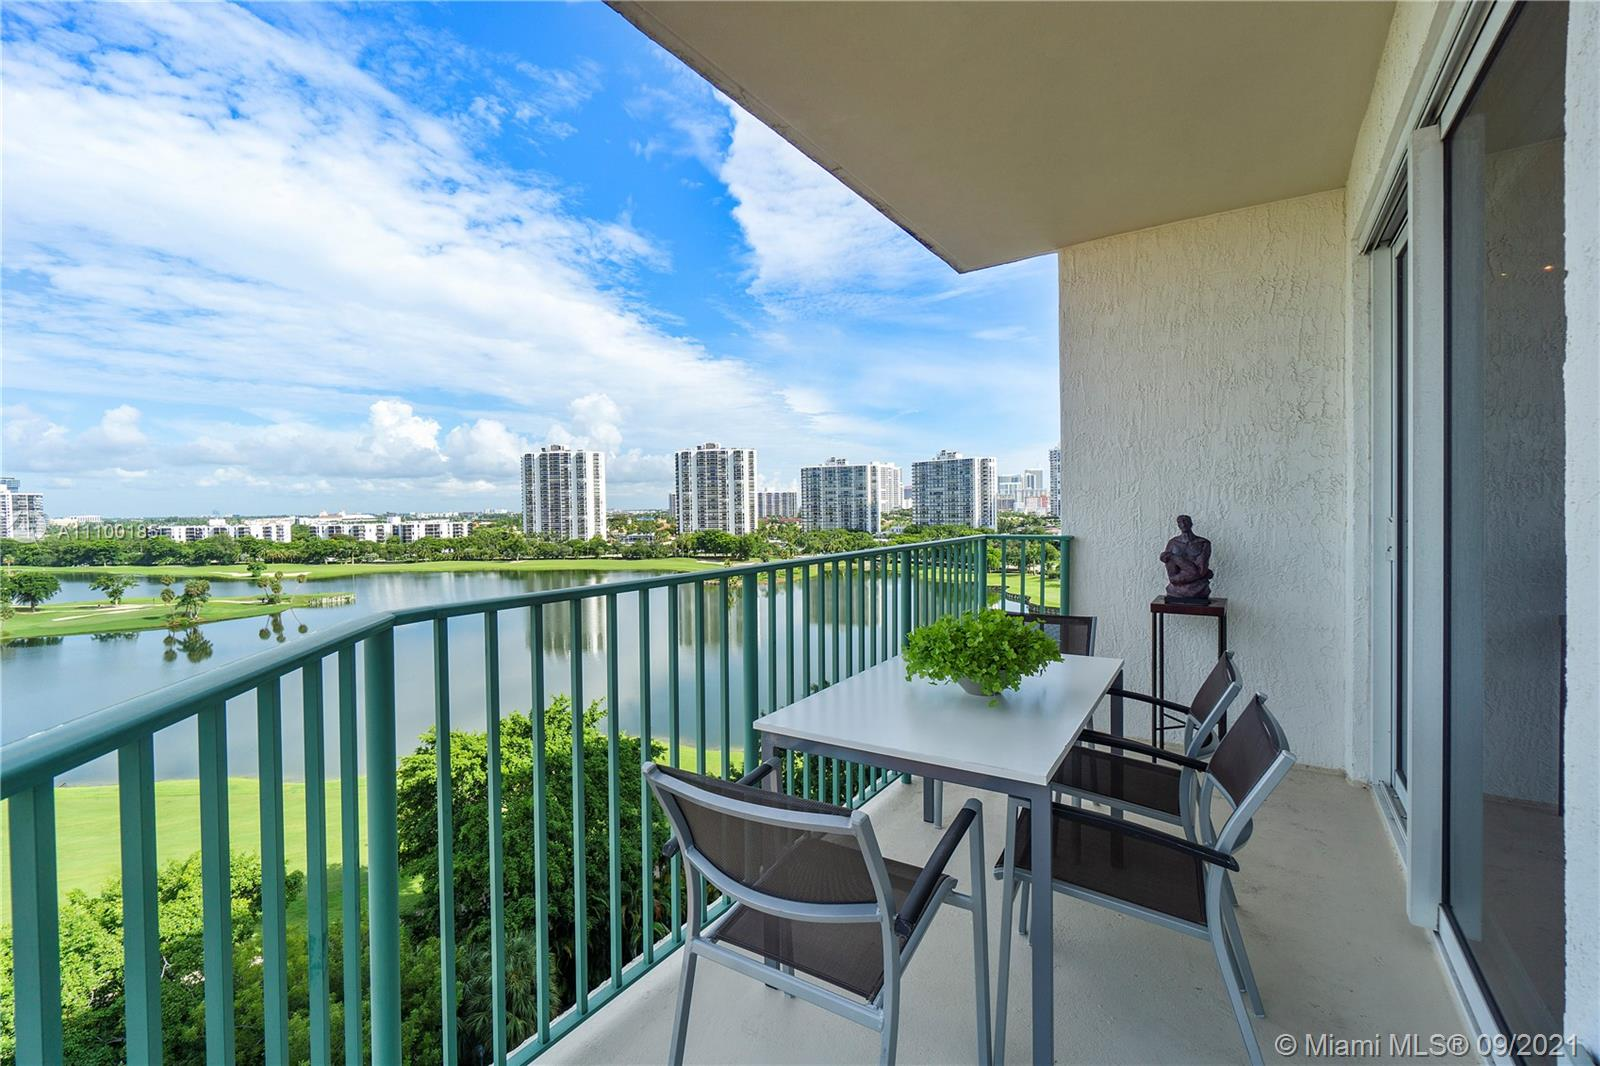 TURNBERRY VLG NO TOWER CO Condo,For Sale,TURNBERRY VLG NO TOWER CO Brickell,realty,broker,condos near me